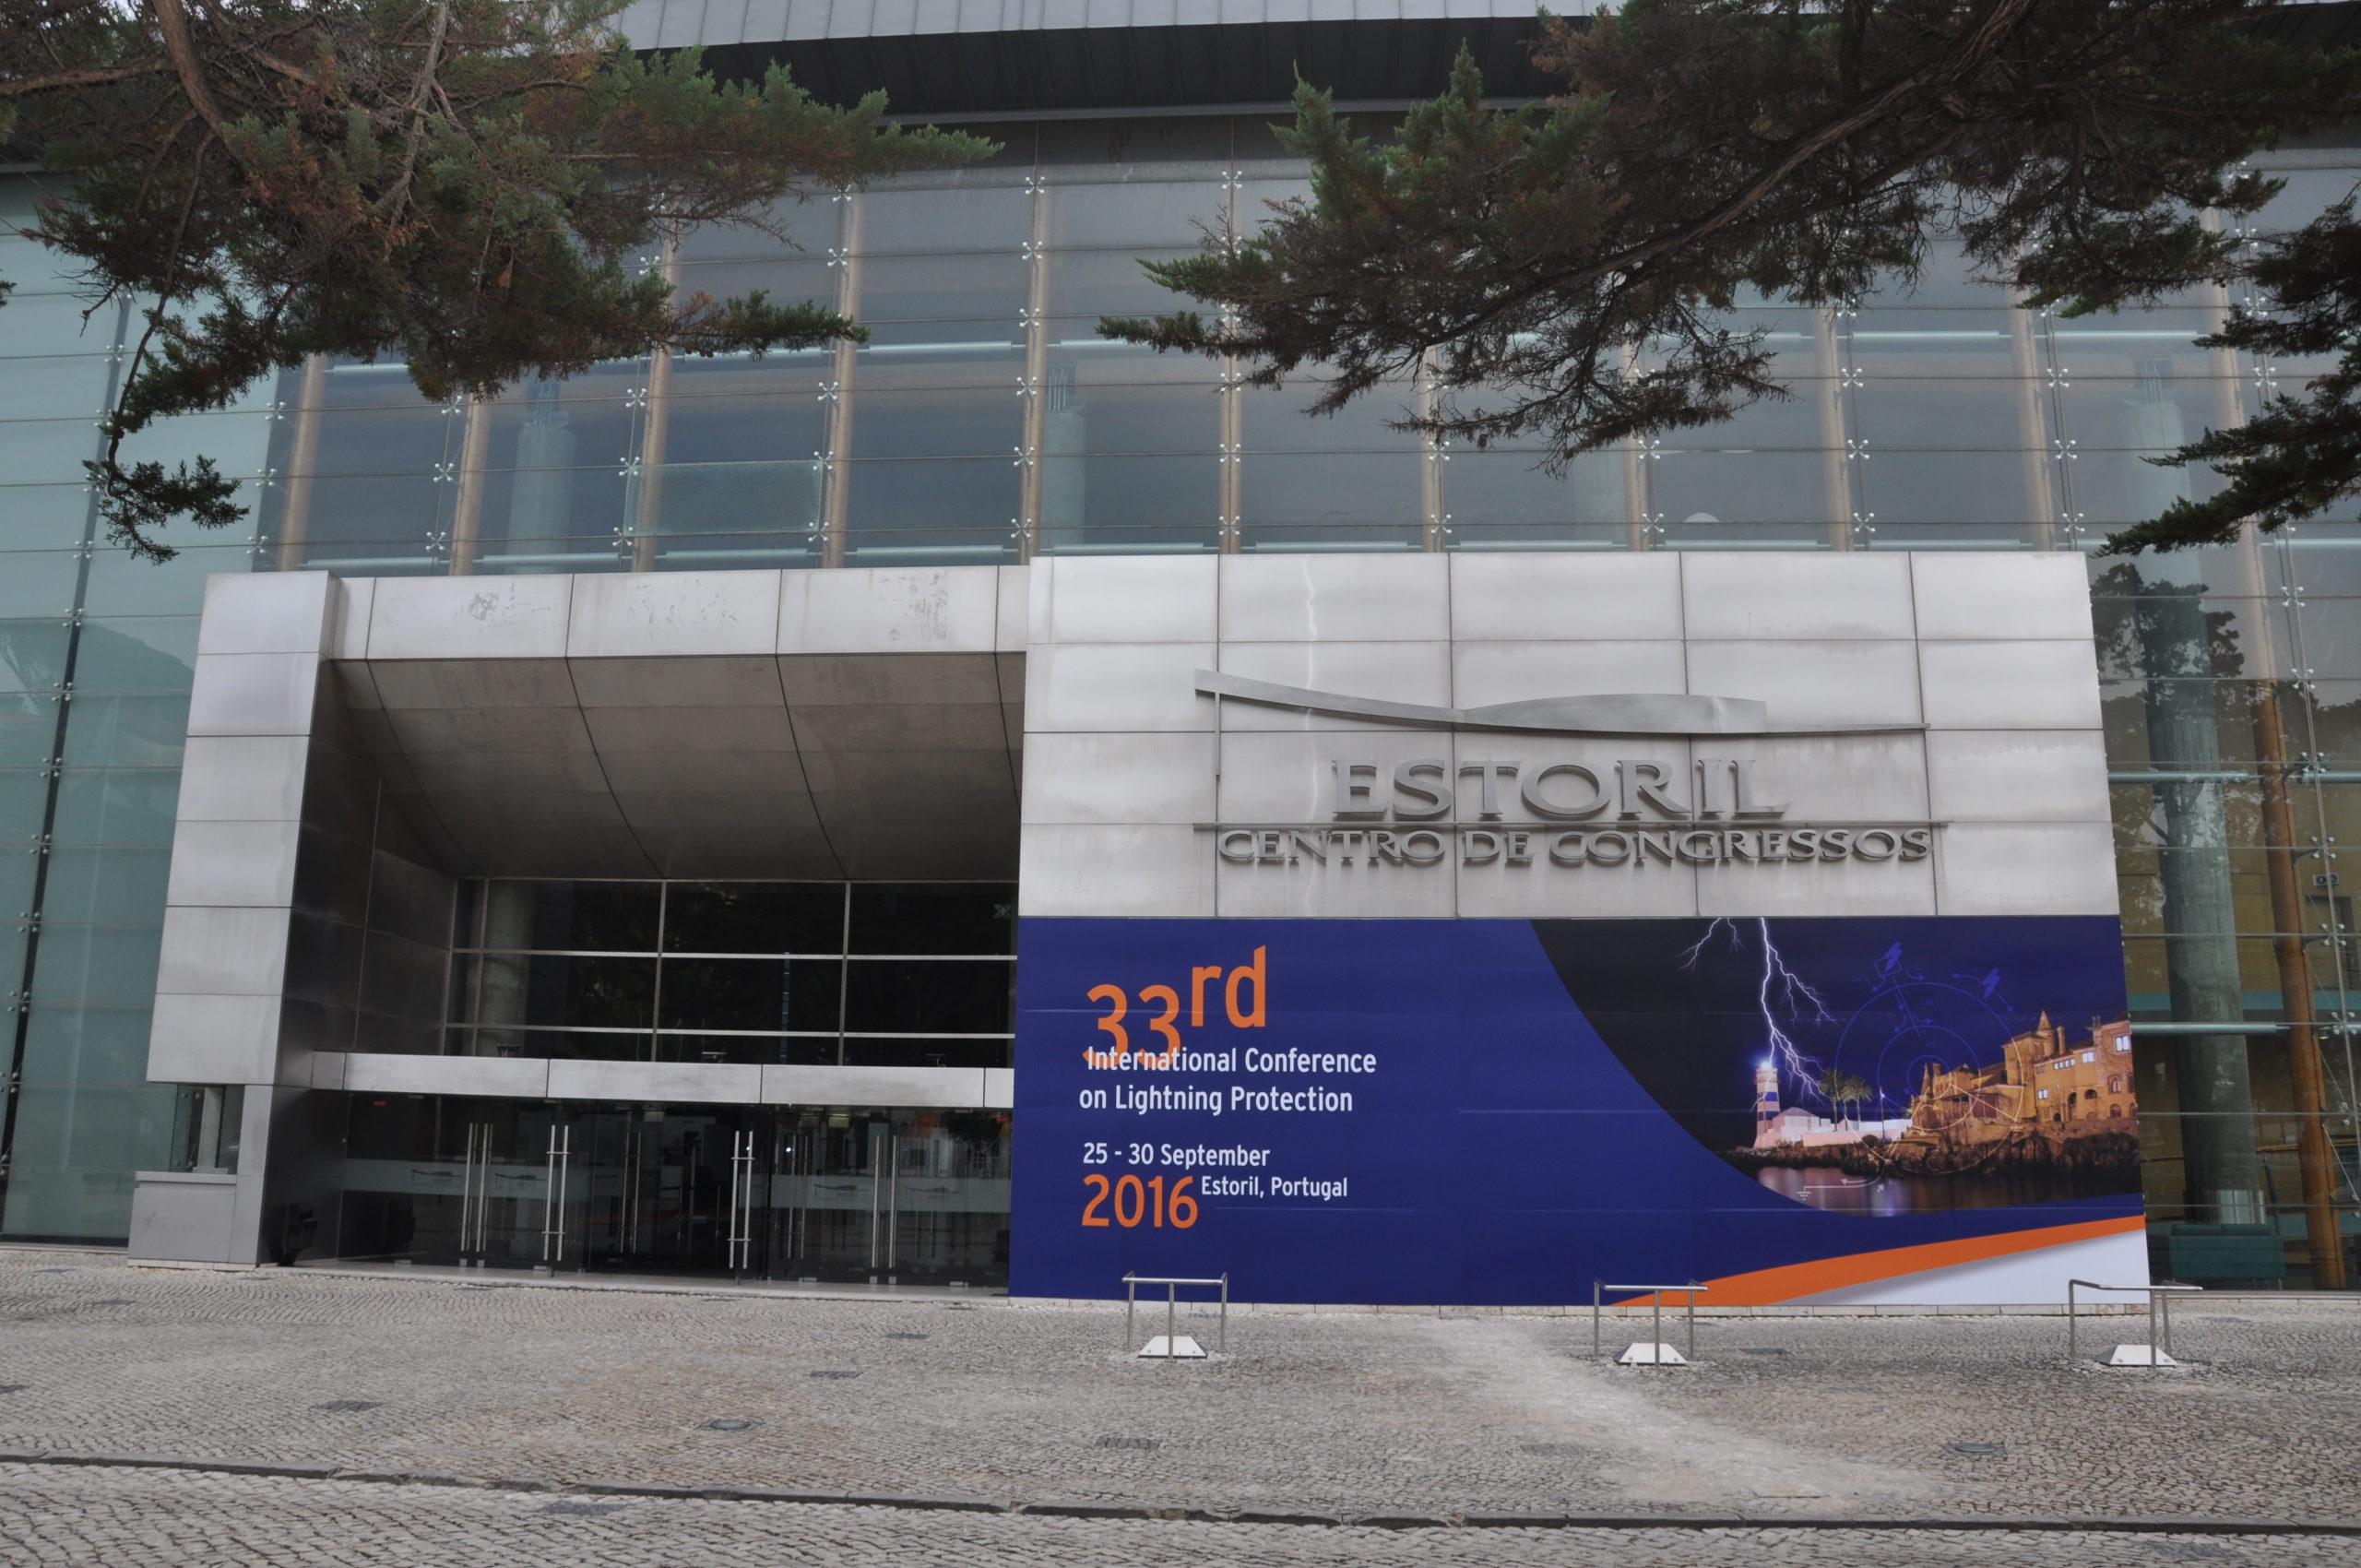 Aplicaciones Tecnológicas sponsors the 33rd International Conference on Lightning Protection (ICLP)